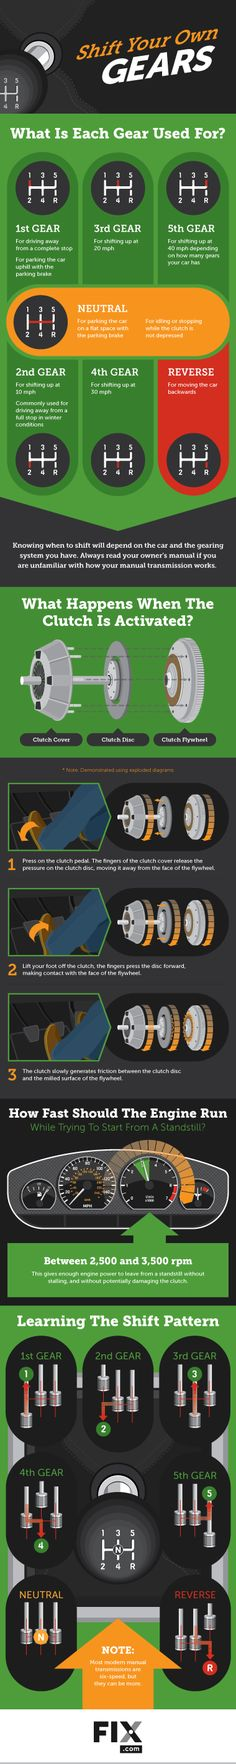 Shifting Your Own Gears: Way to Drive a Manual Transmission #Infographics